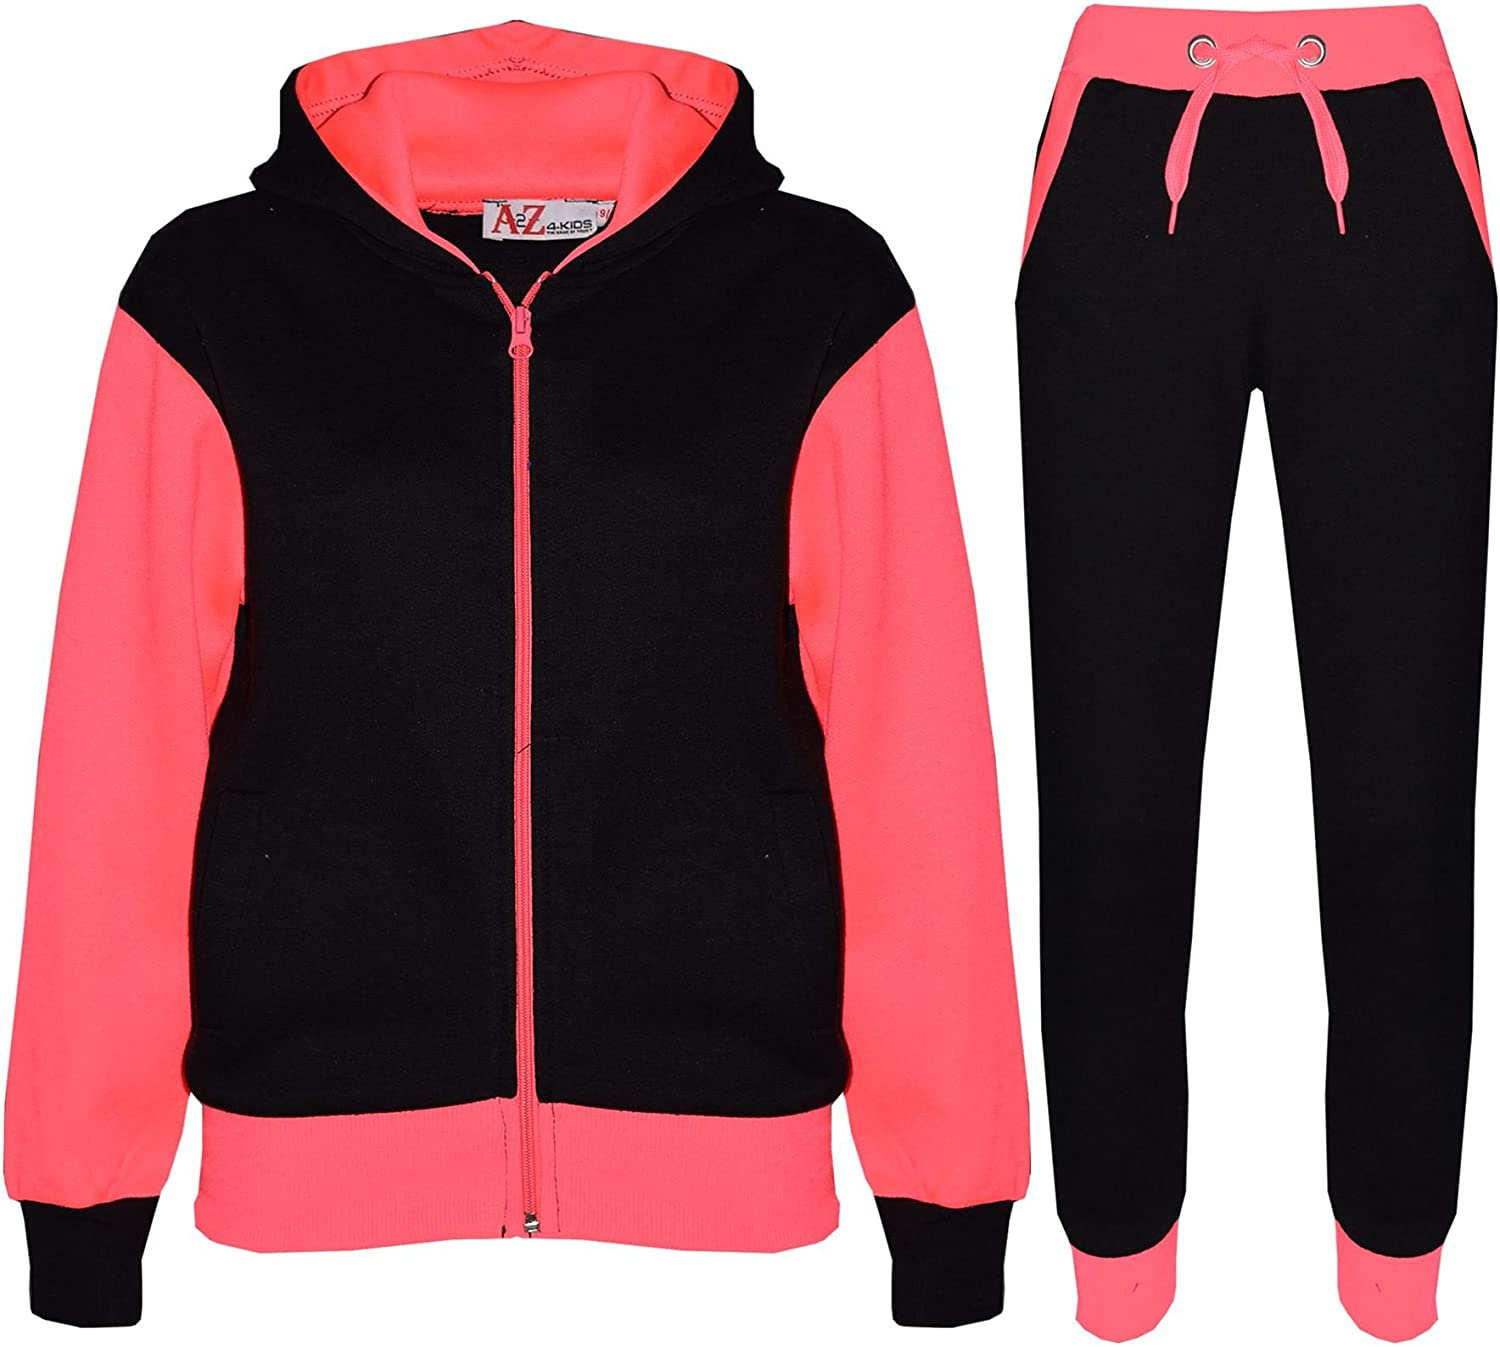 2-3 Years Plain 101 A2Z 4 Kids/® Kids Tracksuit Girls Boys Designers Plain Contrast Neon Pink